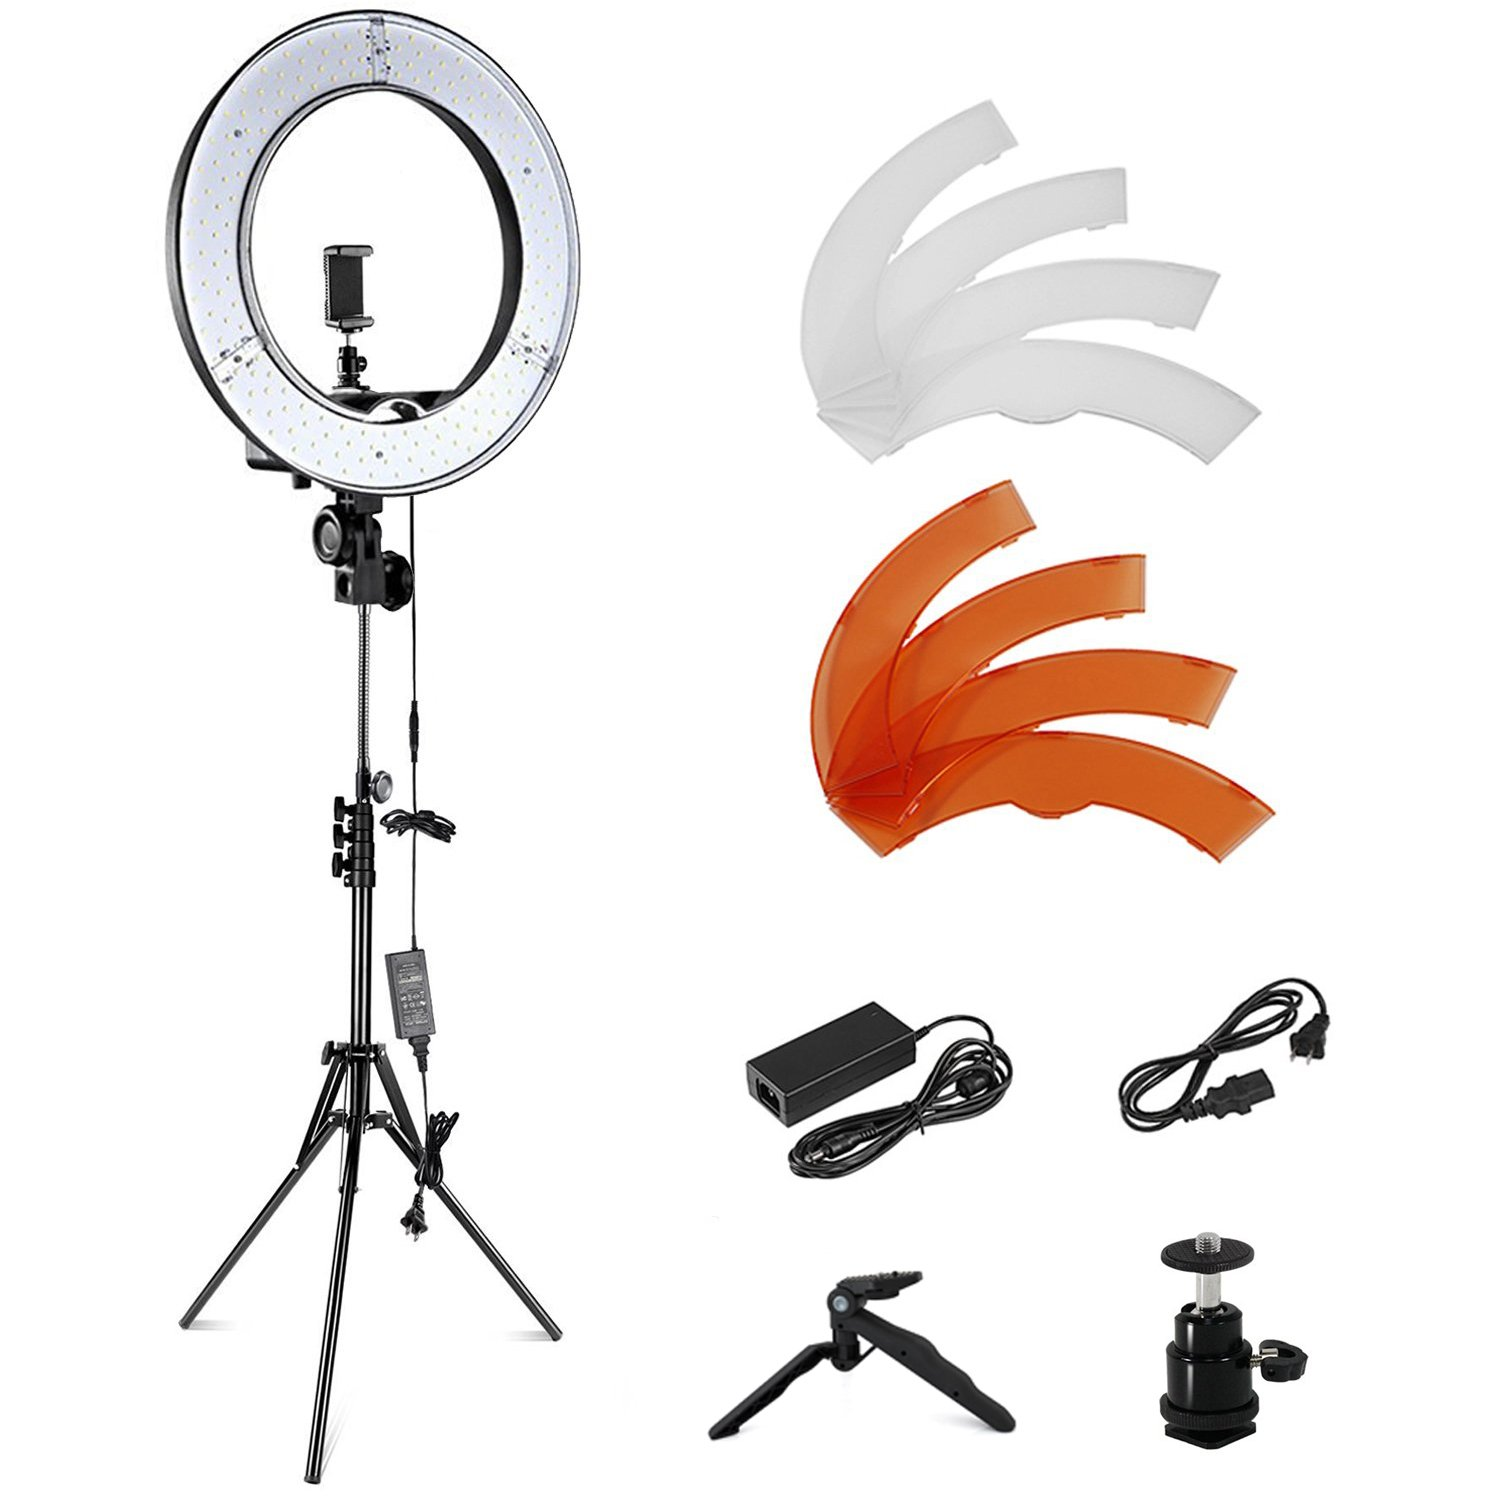 Lokfworld Ring Light 14-inch LED with Light Stand 65W 5400K Lighting Kit with Soft Tube,Color Filter,Hot Shoe Adapter, Small triangular stent for Makeup,Camera Smartphone Youtube Video Shooting by LOKFWORLD